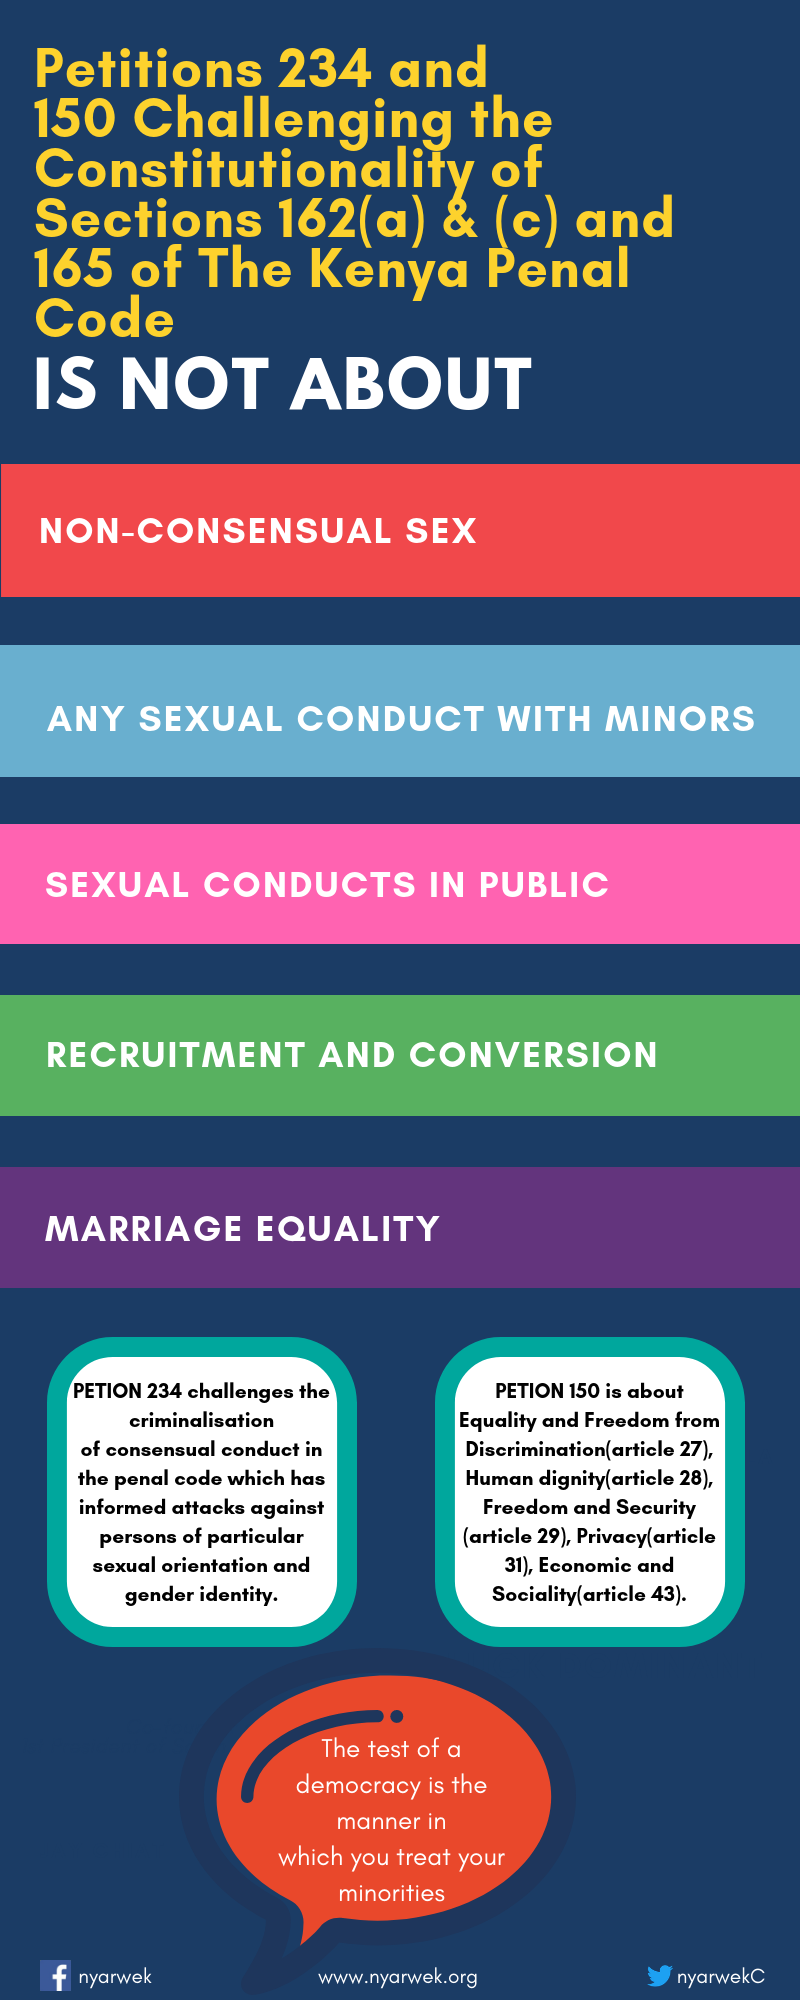 repeal 162 brochure - panel 2.png